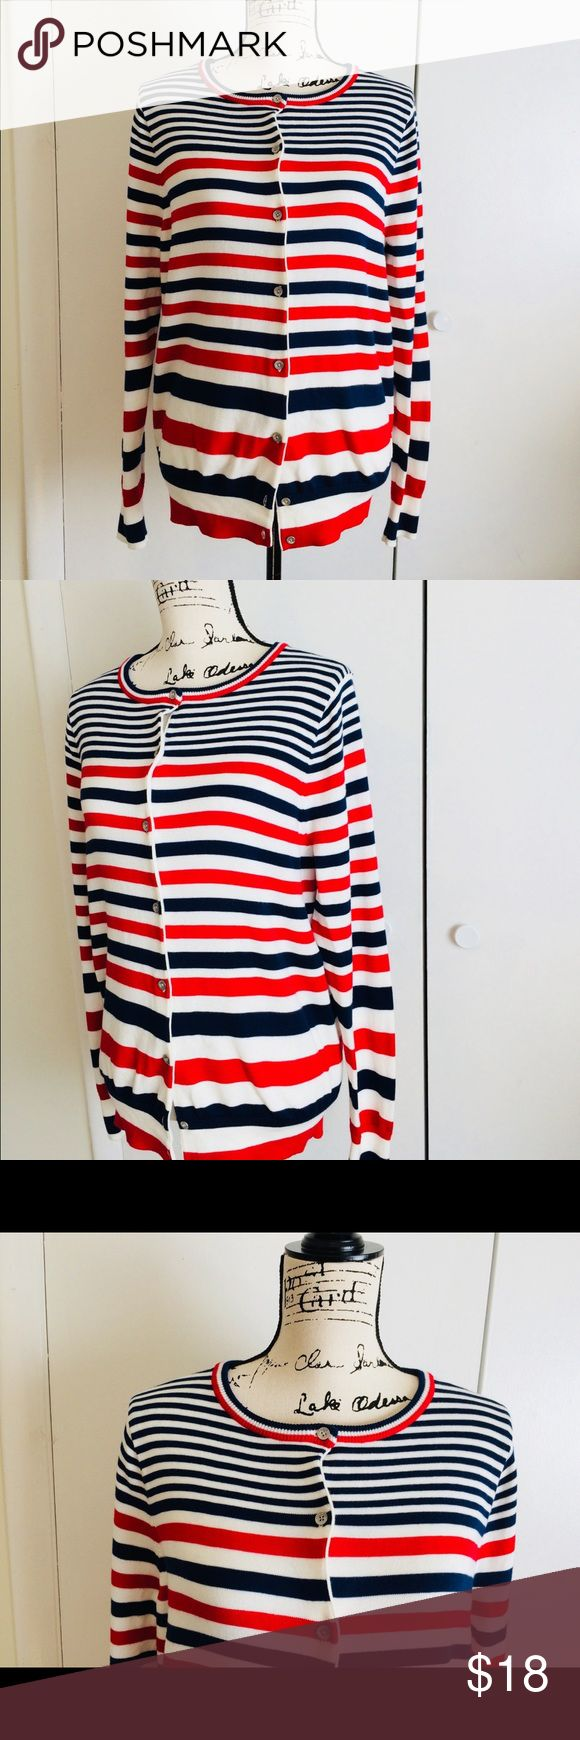 """Lands End Red White Blue Striped Cotton Cardigan Lands End Red White and Blue Striped 100% Suprima Cotton Cardigan Sweater Size M 10-12  EUC. No holes and tears. Looks brand new!  Measurements laid Flat: 19"""" Chest from underarm to underarm, 26"""" H from shoulder to bottom of Sweater, 25"""" Sleeves.  Comes from smoke free and pet free home Lands' End Sweaters Cardigans"""